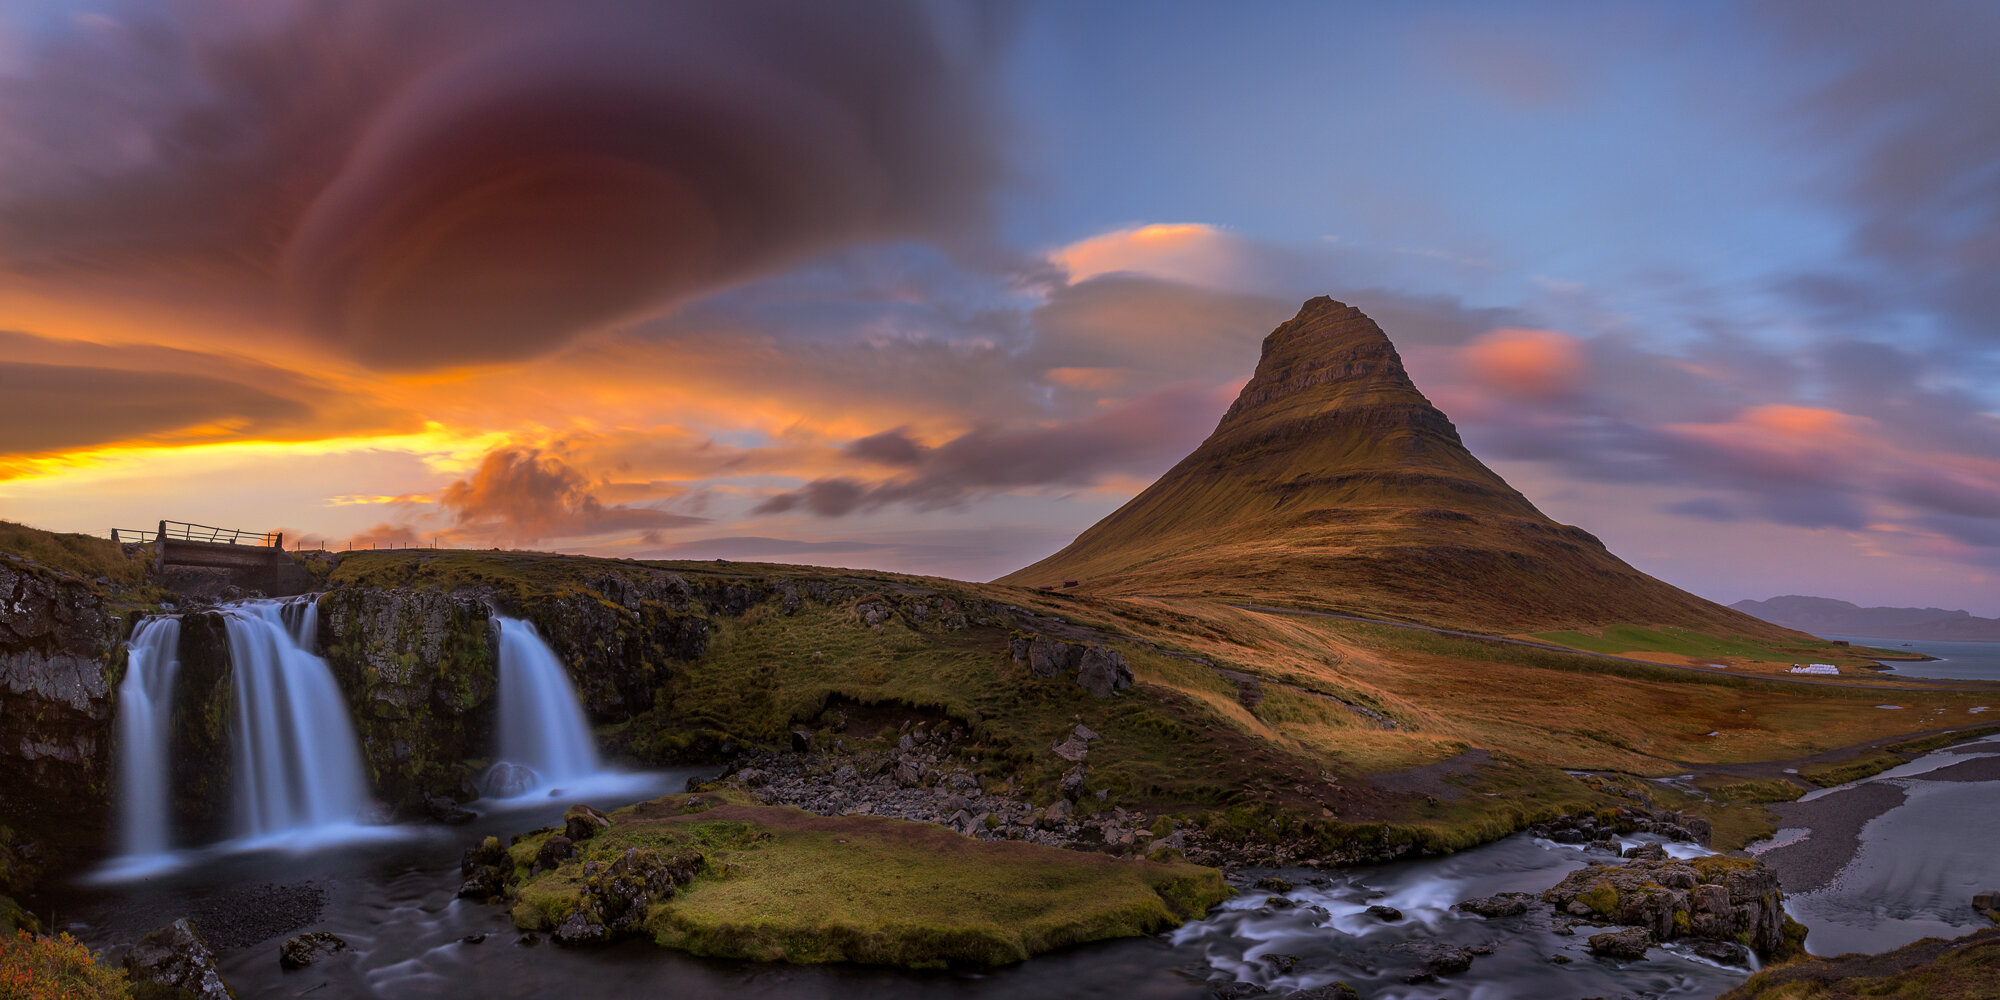 Iceland Landscape Photography: 'The Arrowhead - Kirkjufell'